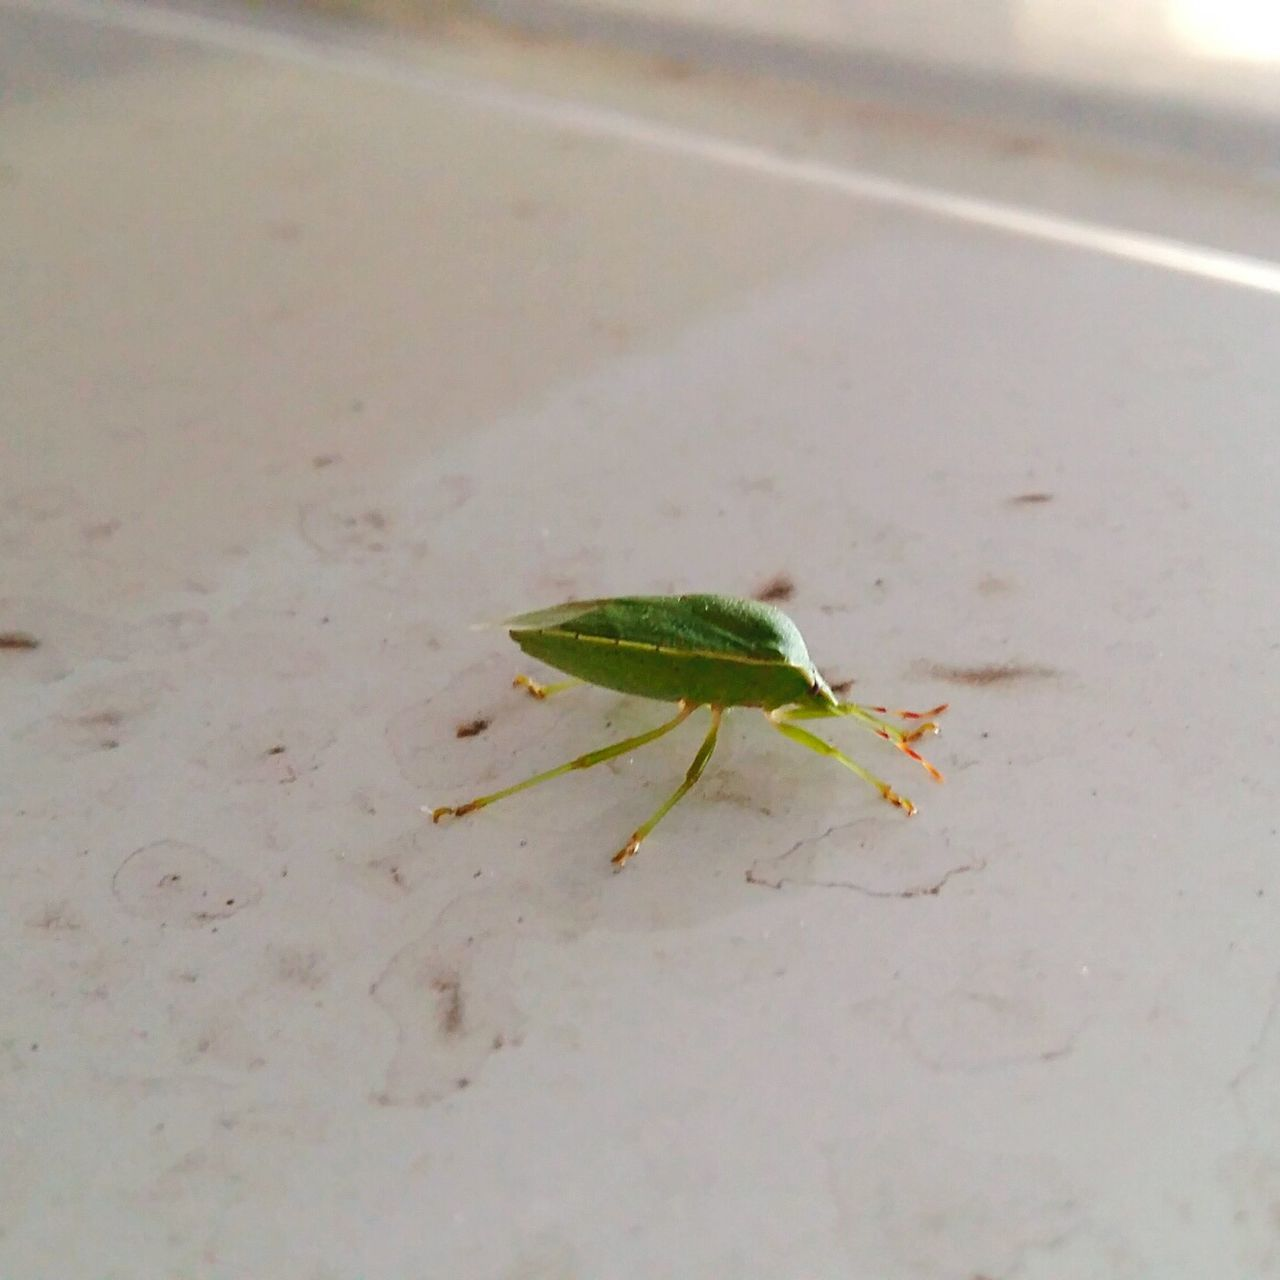 Green Bug Stink Bug Pentatomidae Taking A Joyride On Top Of... my Car Roof Telling Stories Differtenly Colour Of Life Maximum Closeness